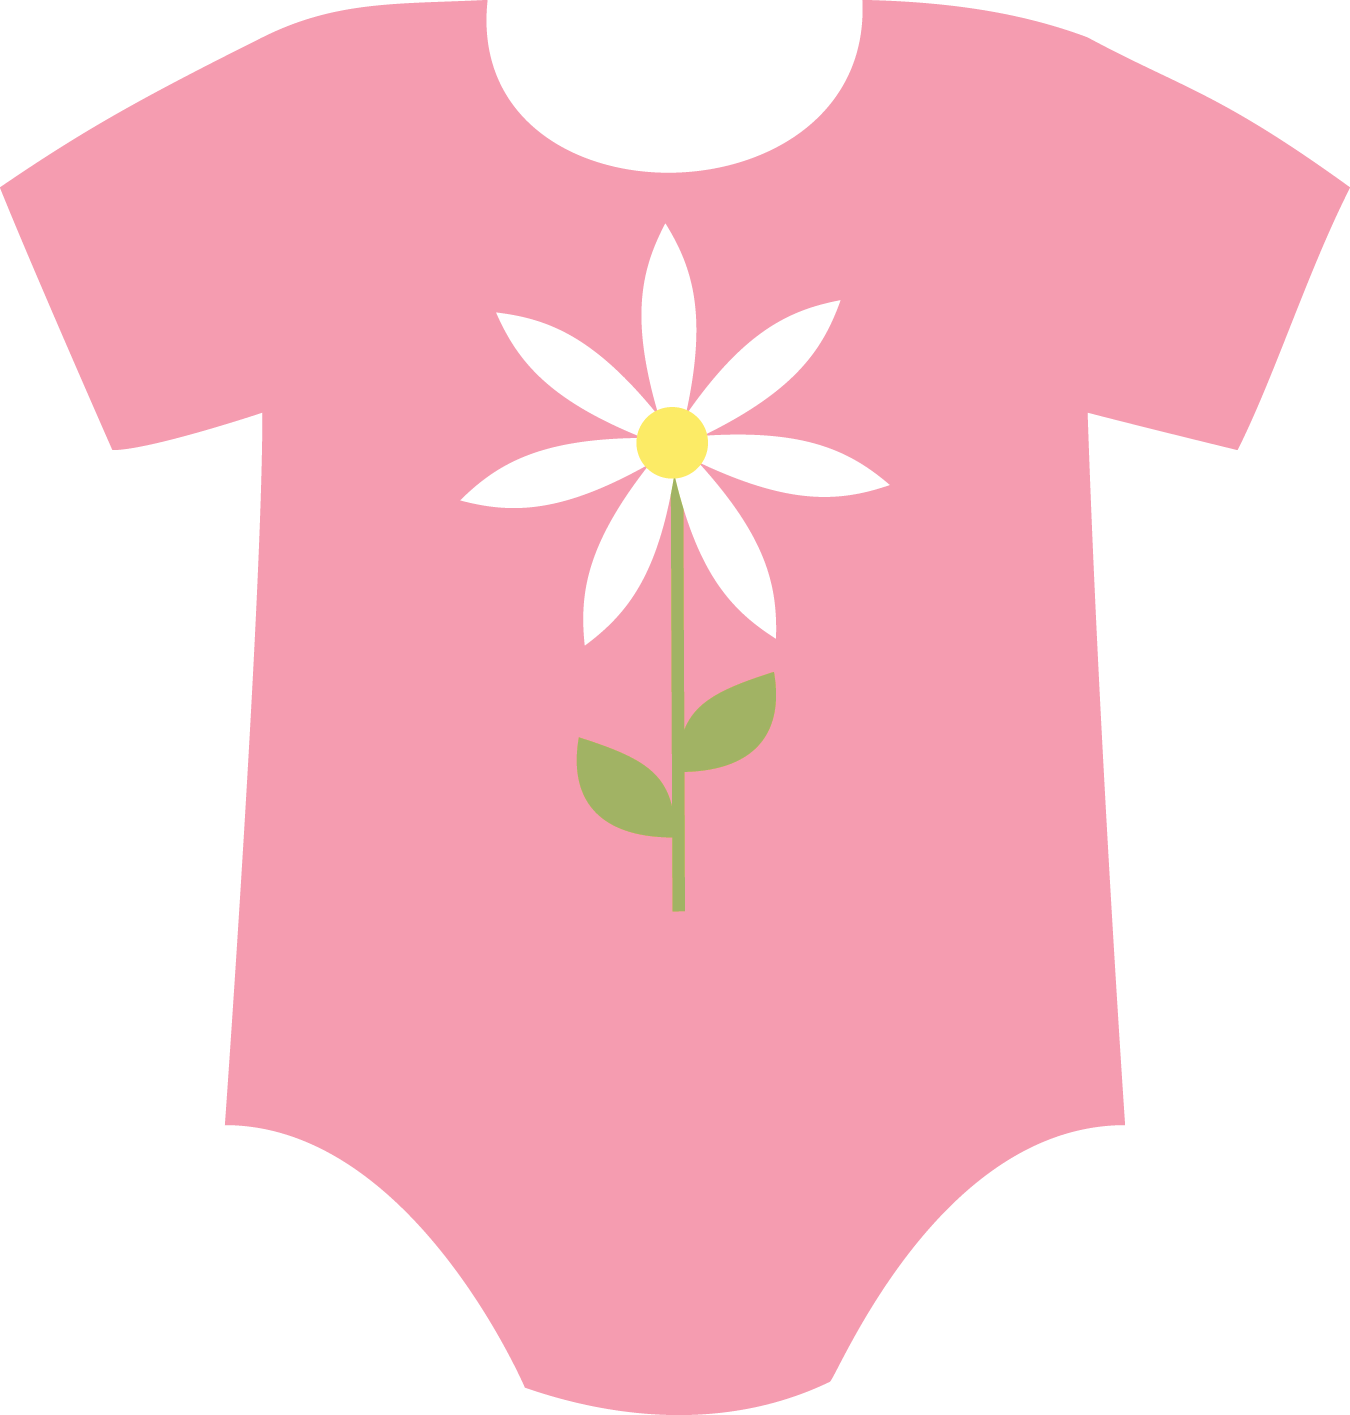 pajamas clipart baby outfit #134730694